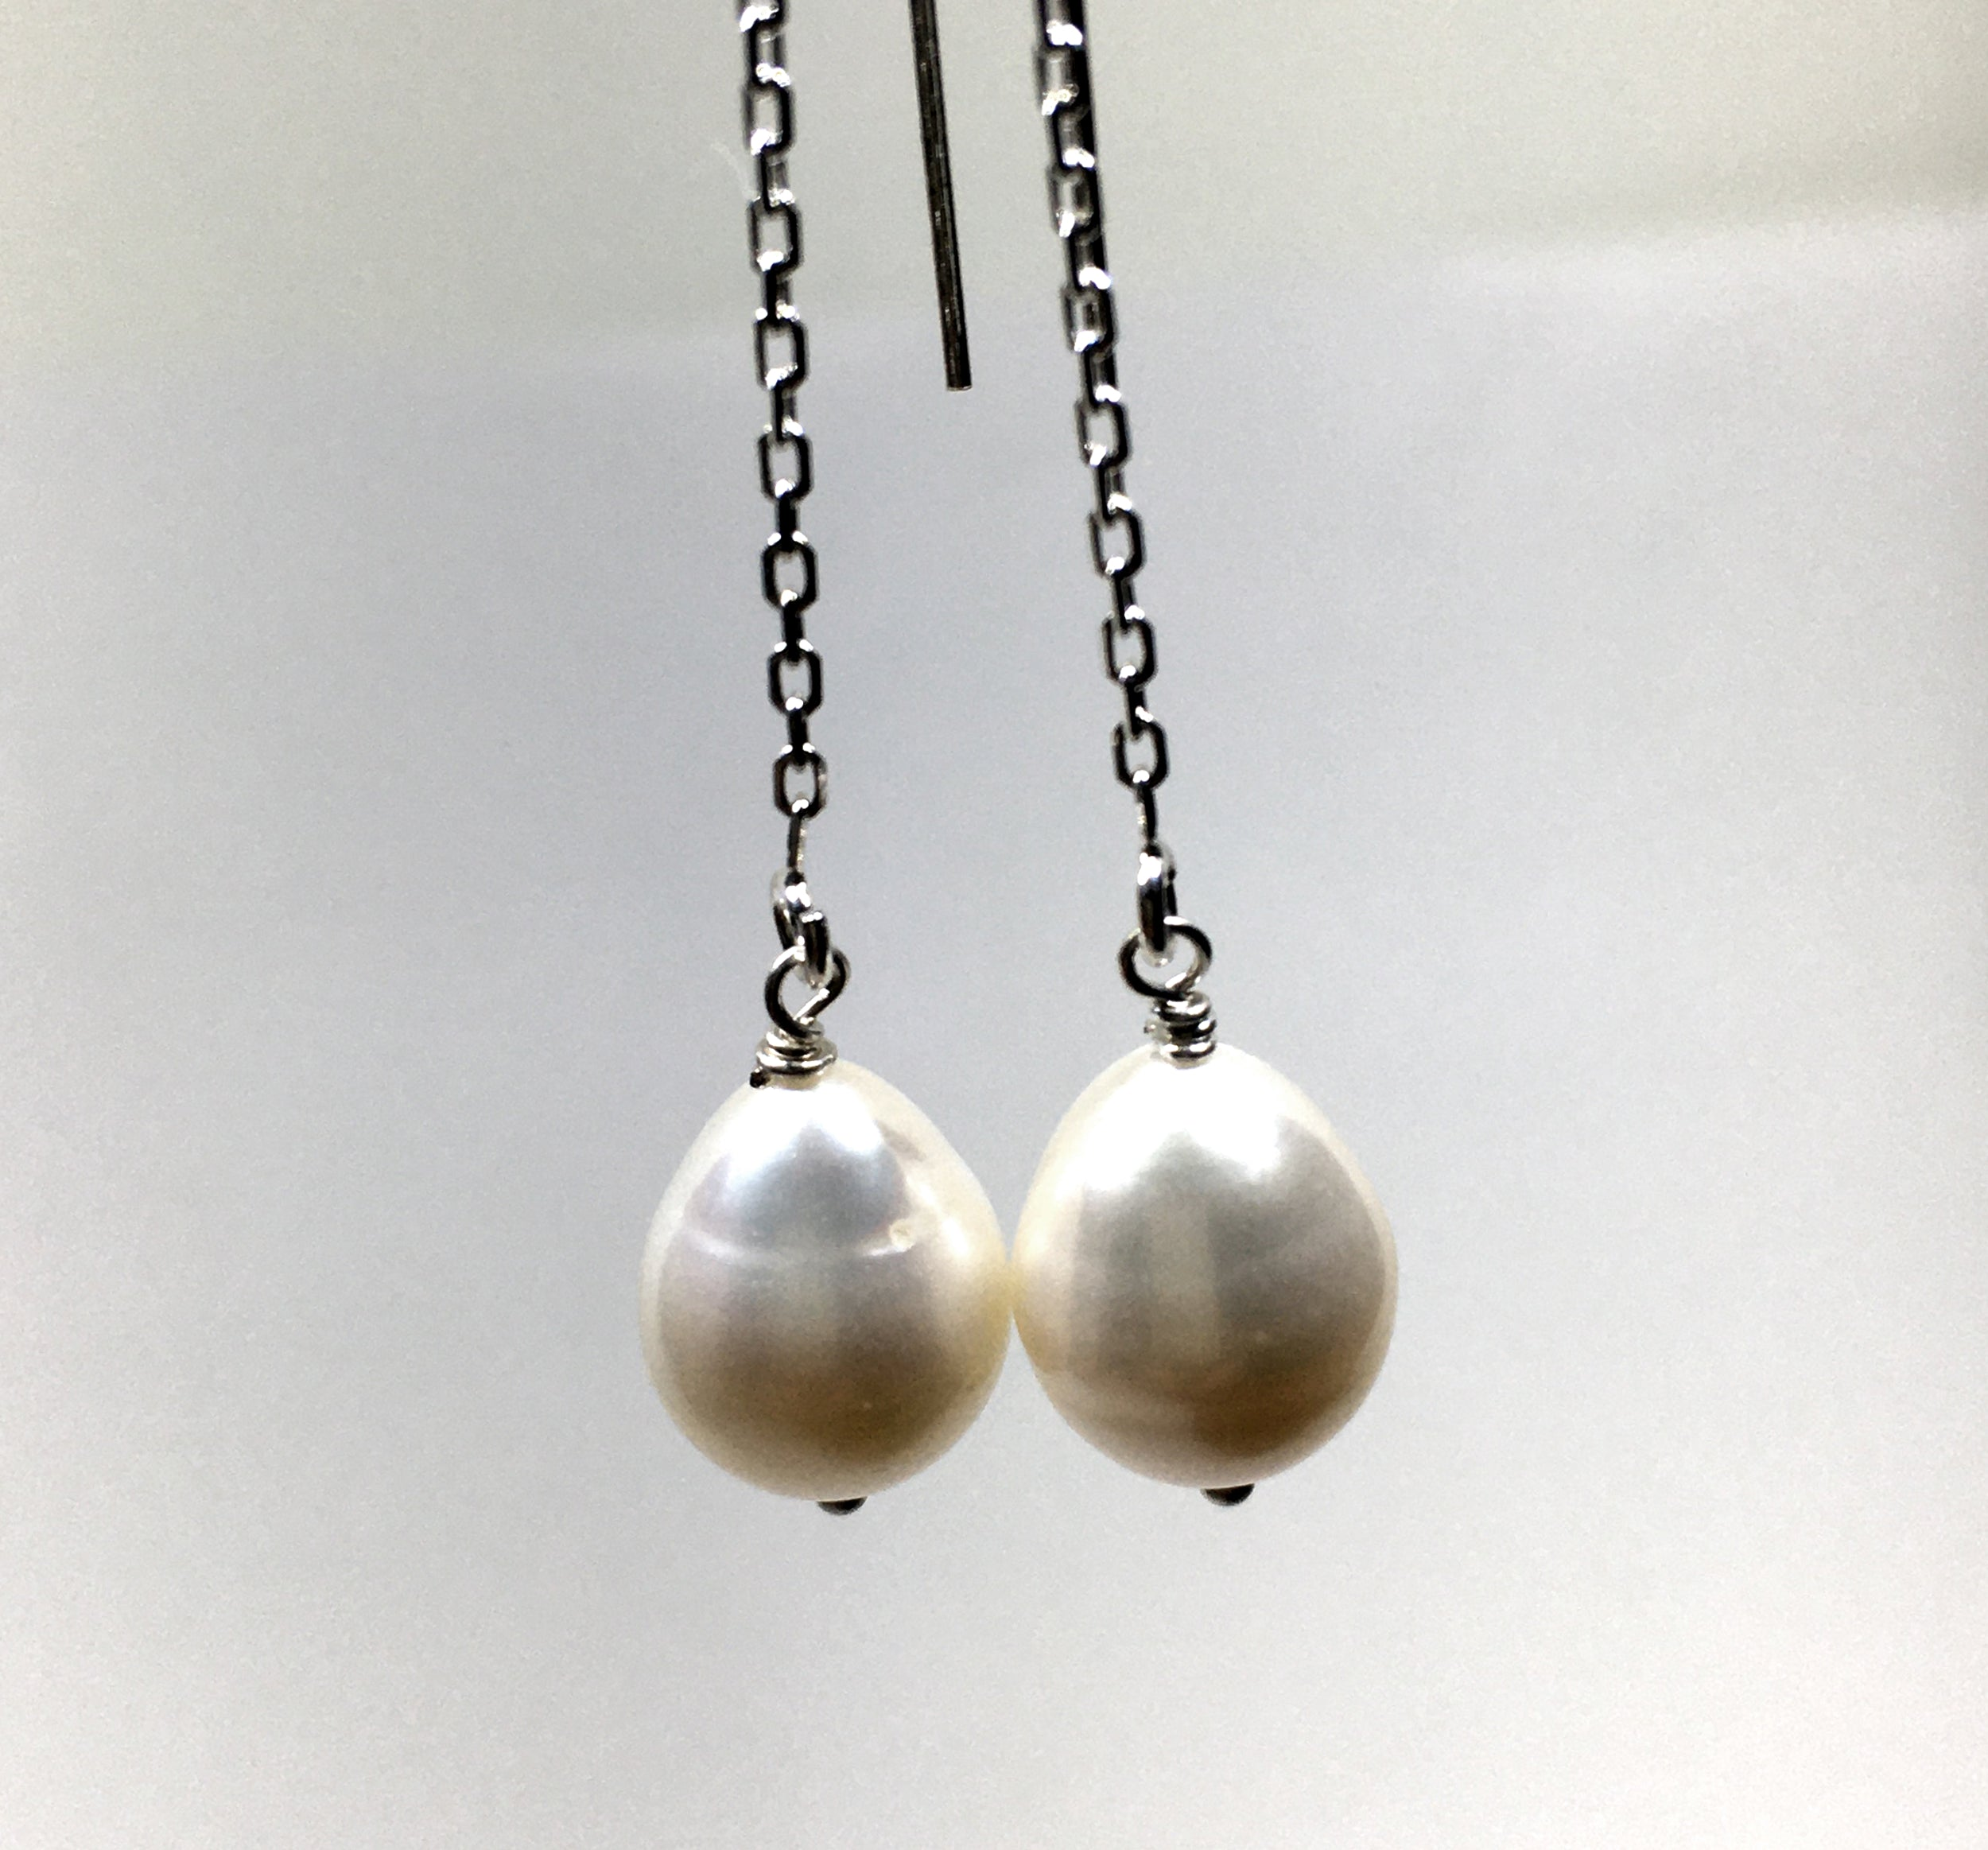 Cultured White Pearl Threader Earrings in Sterling Silver